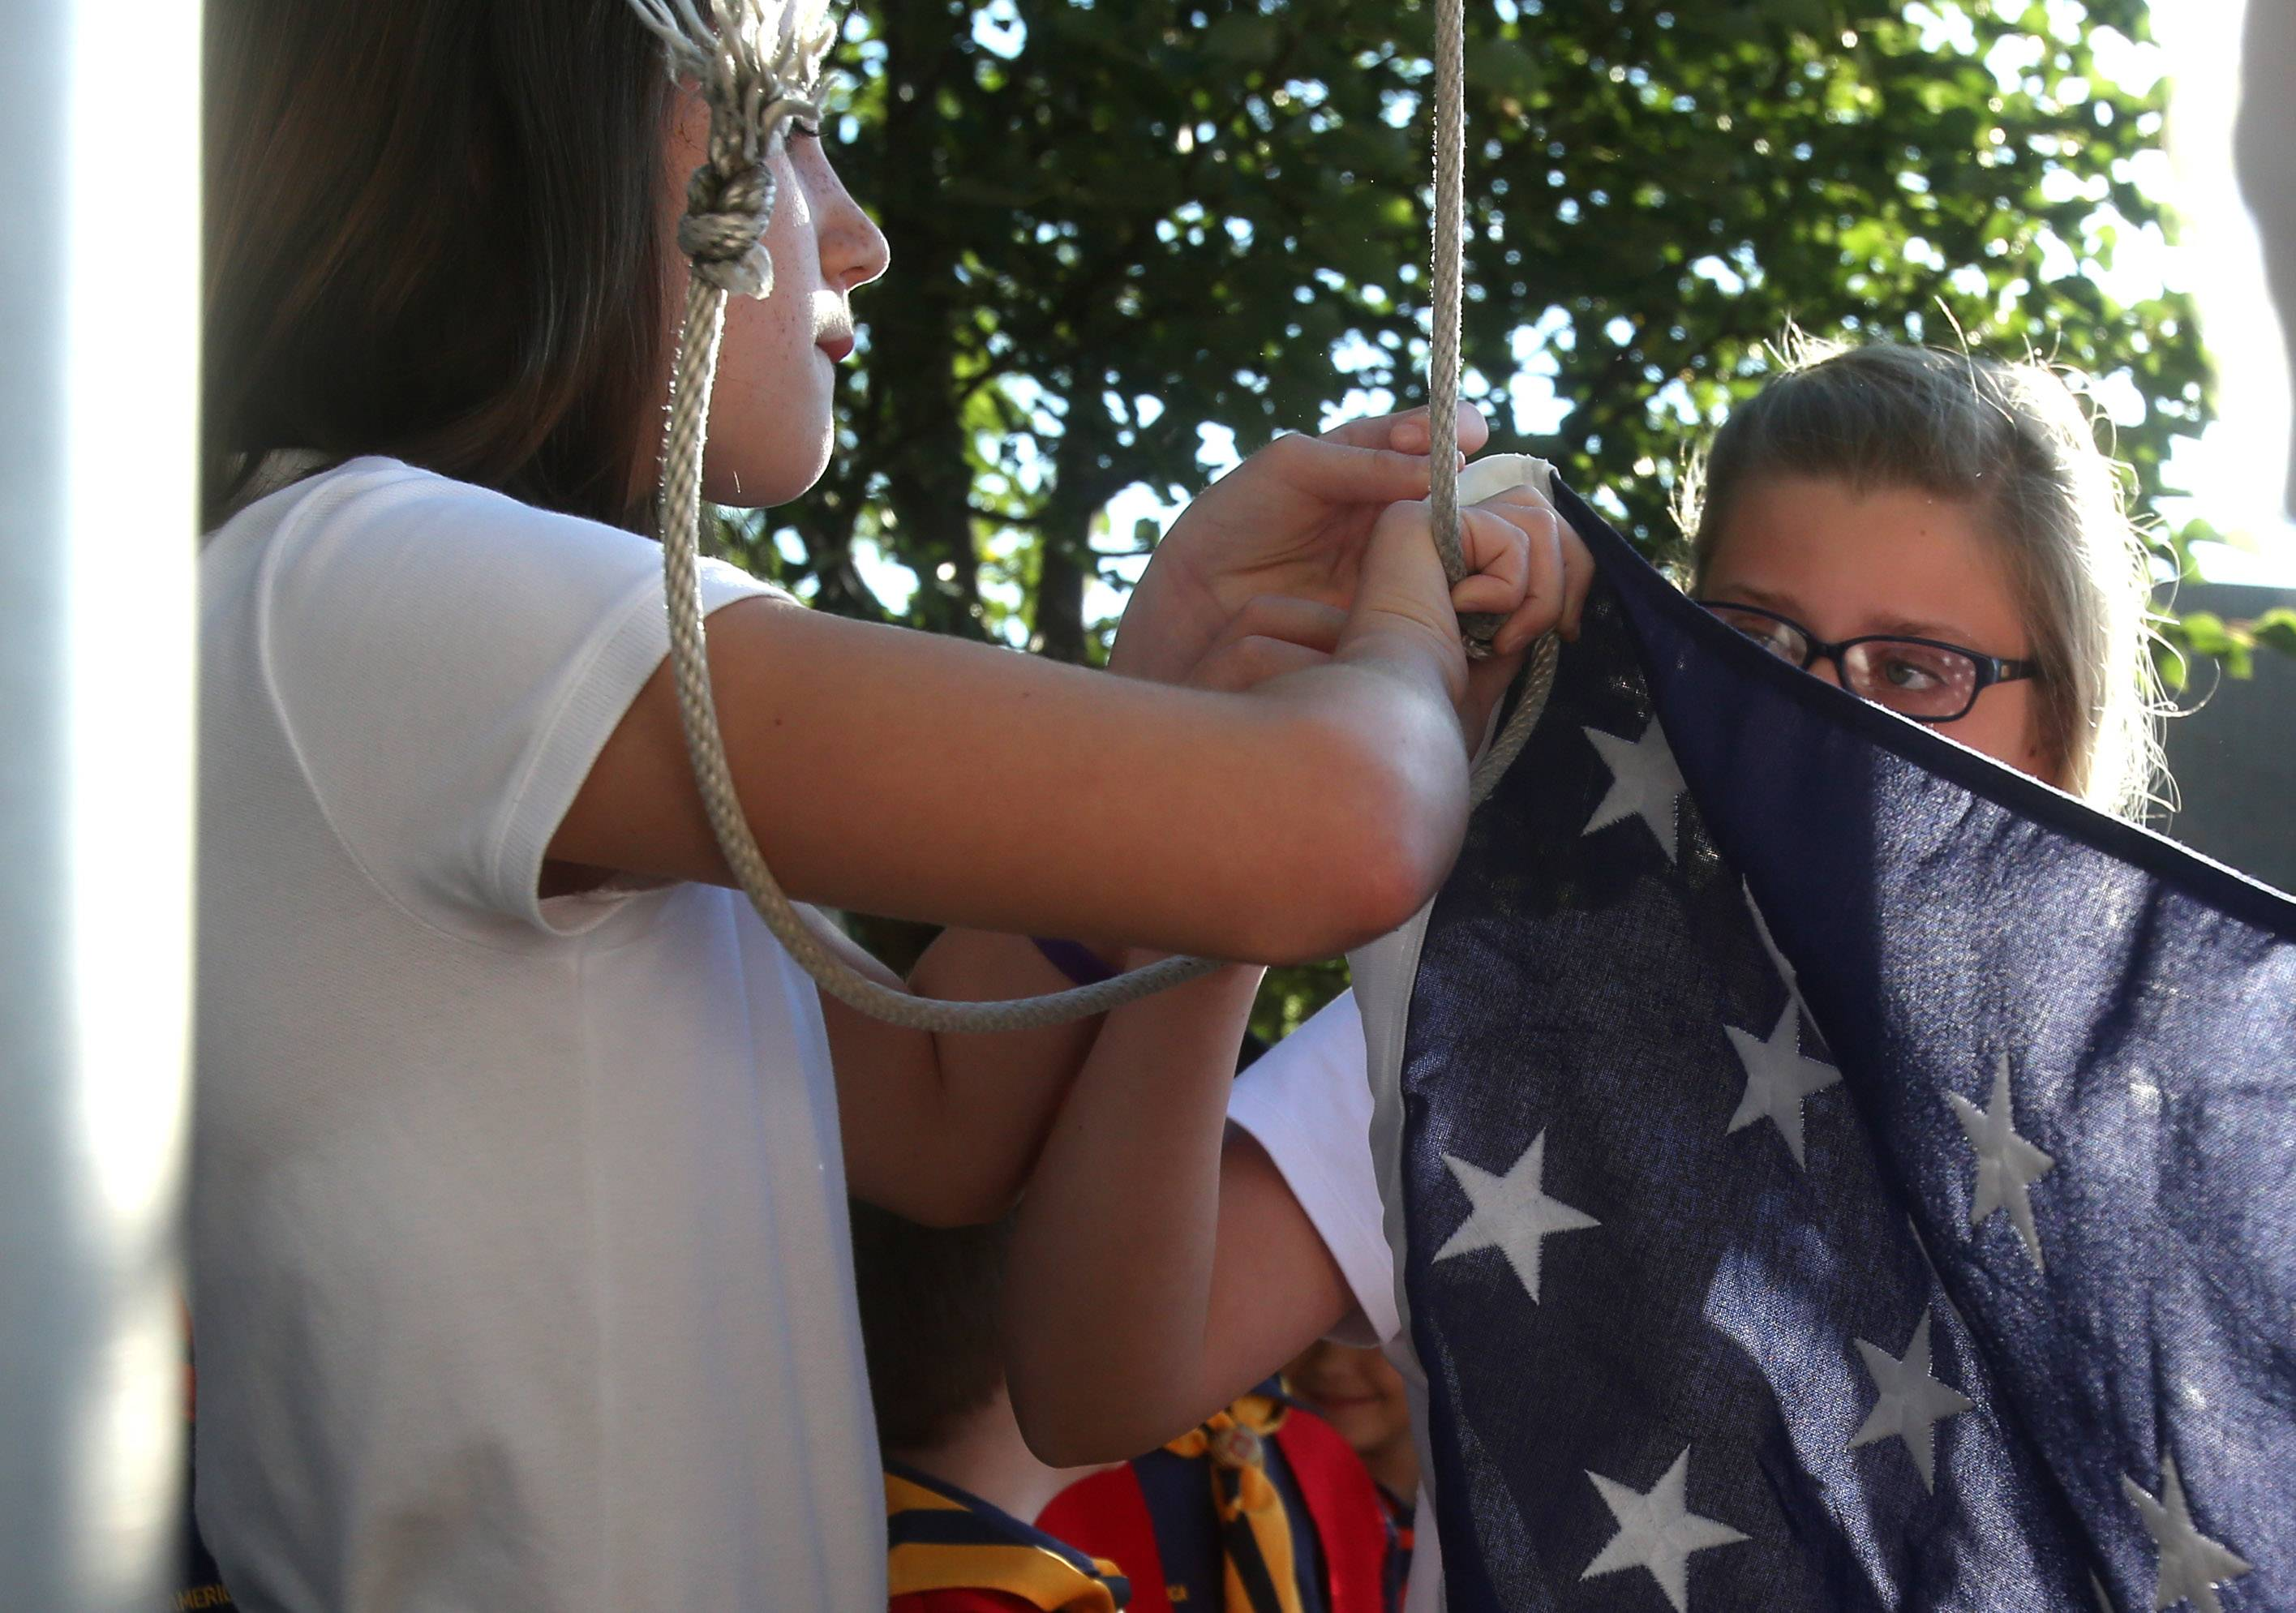 Ani Boghossian, left, and Elizabeth Wessel prepare to raise a new U.S. flag Wednesday during a short ceremony before classes at St. James the Apostle School in Glen Ellyn.